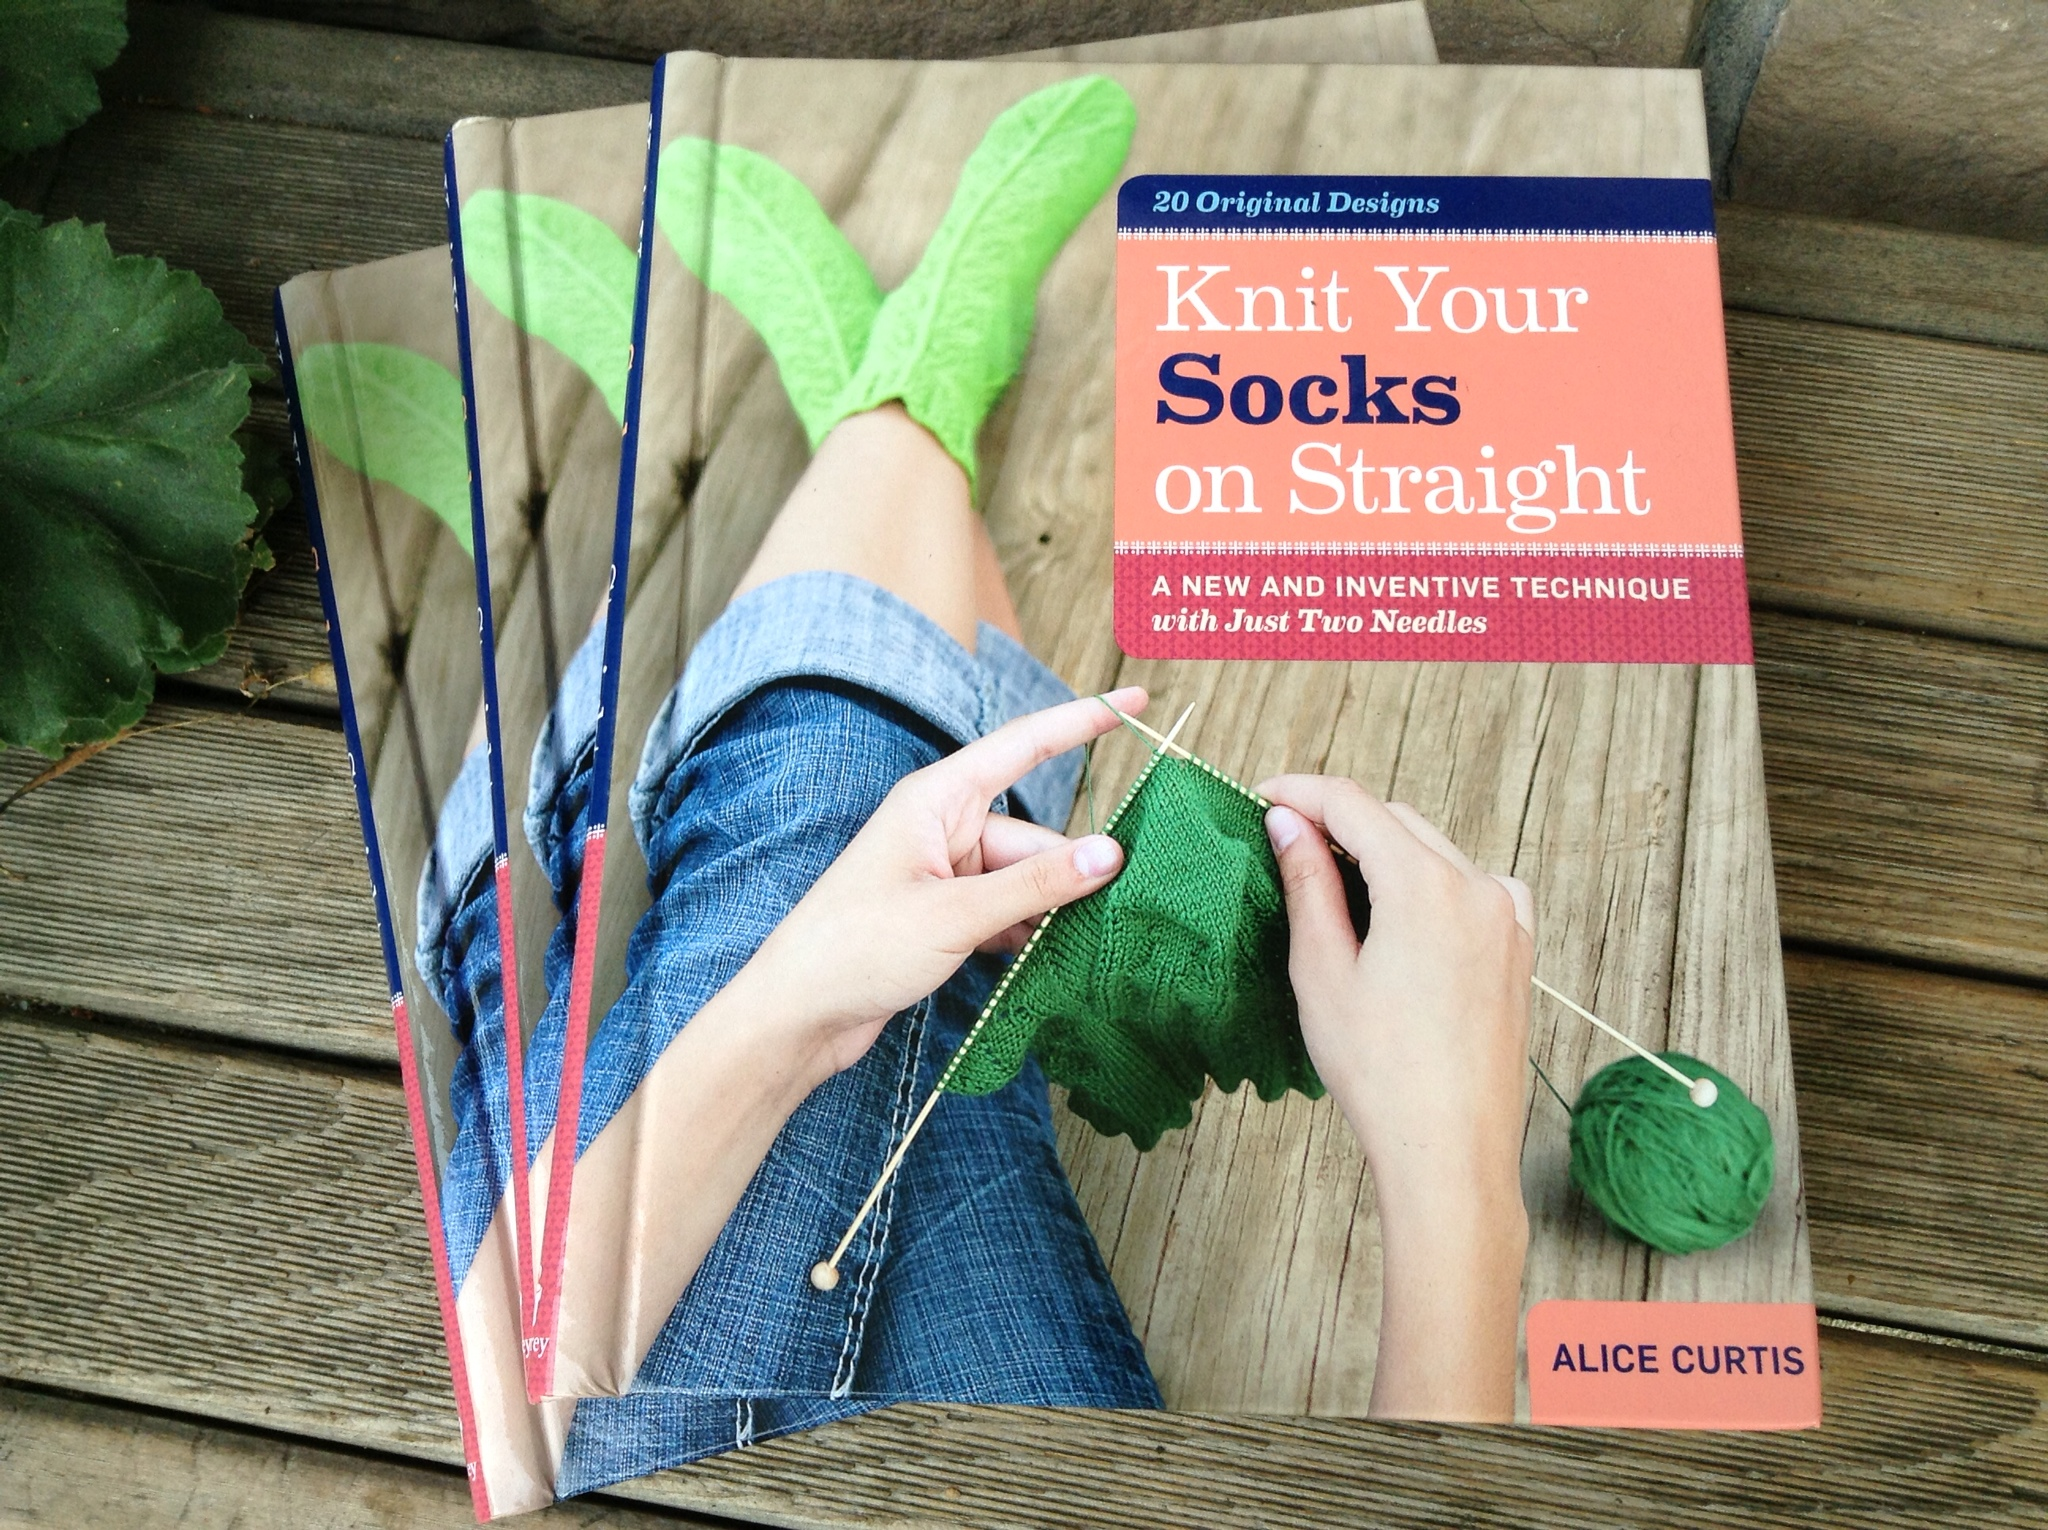 Knit Your Socks on Straight: A New and Inventive Technique with Just Two Needles